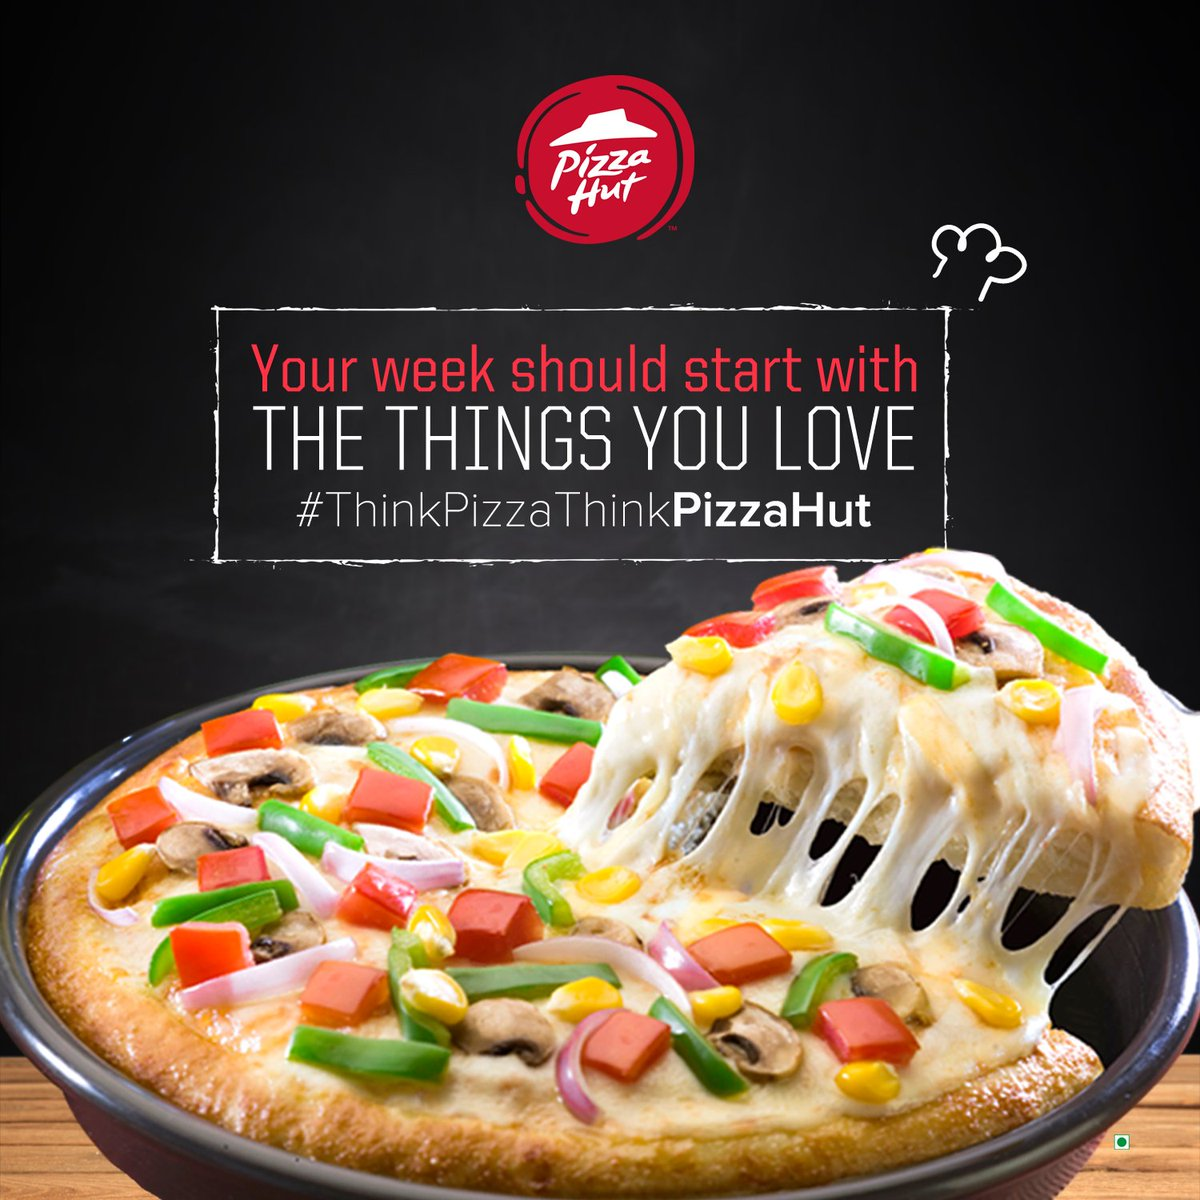 Mondays are for power meals. ThinkPizzaThinkPizzaHut https t.co 2M8ruoygNv